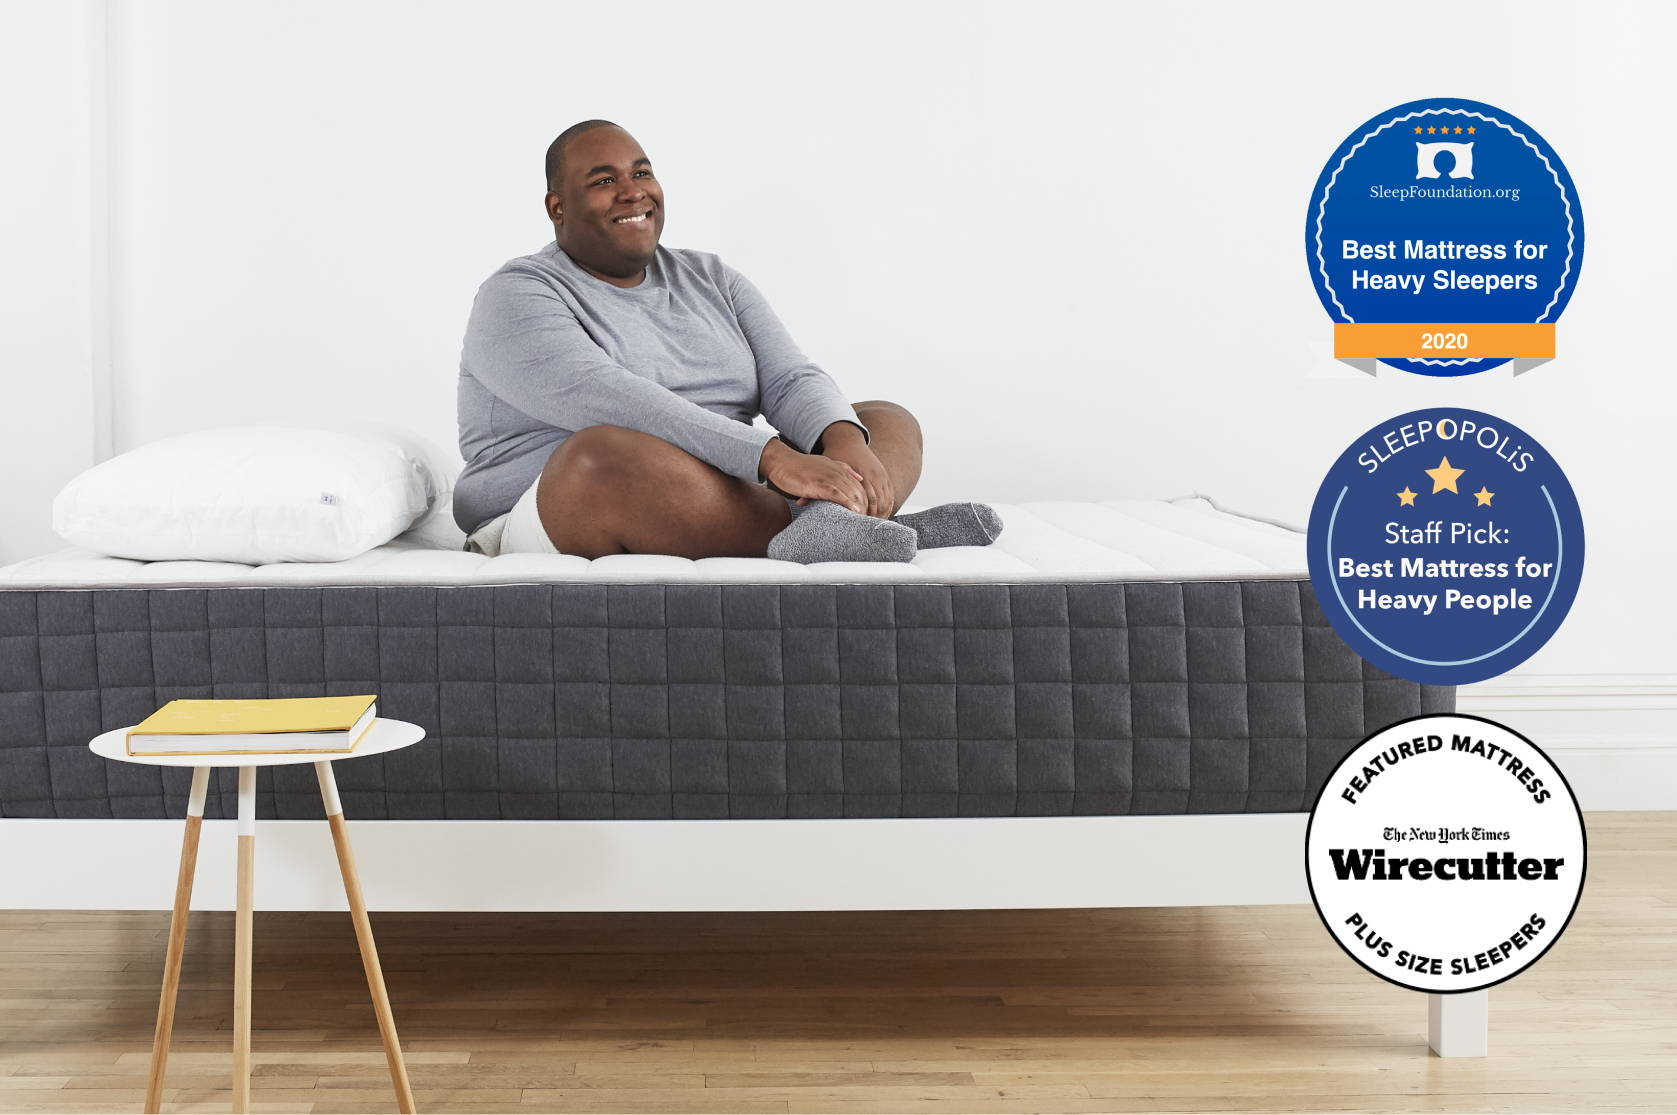 Man sitting on Helix Plus mattress with awards presented to mattress featured on the image